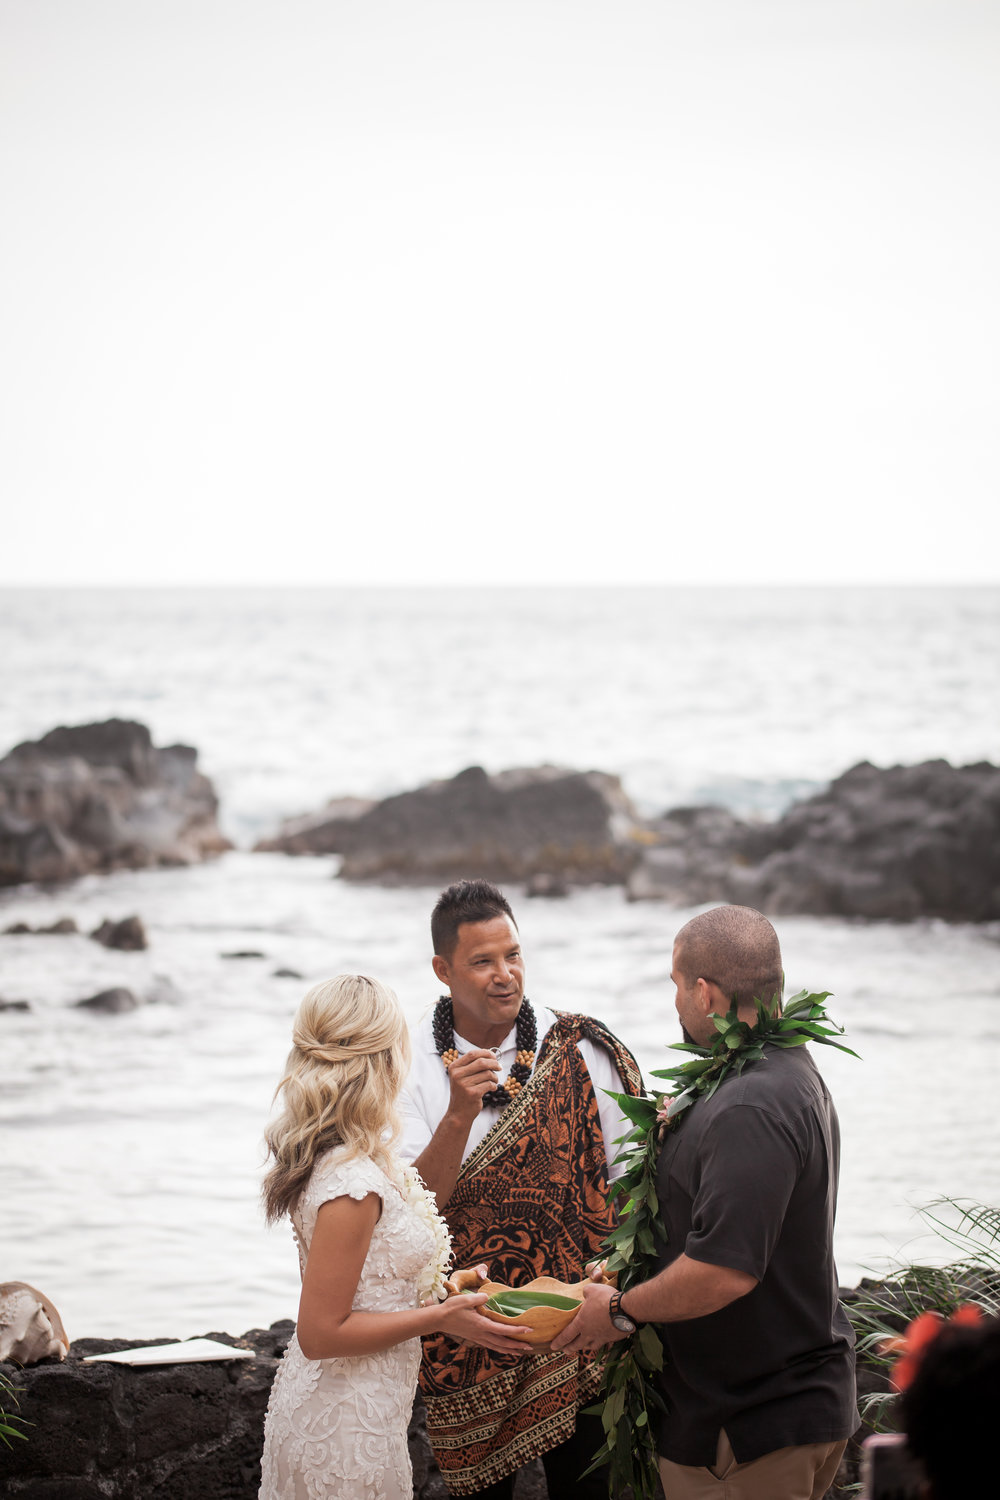 big island hawaii royal kona resort beach wedding © kelilina photography 20170520170043.jpg